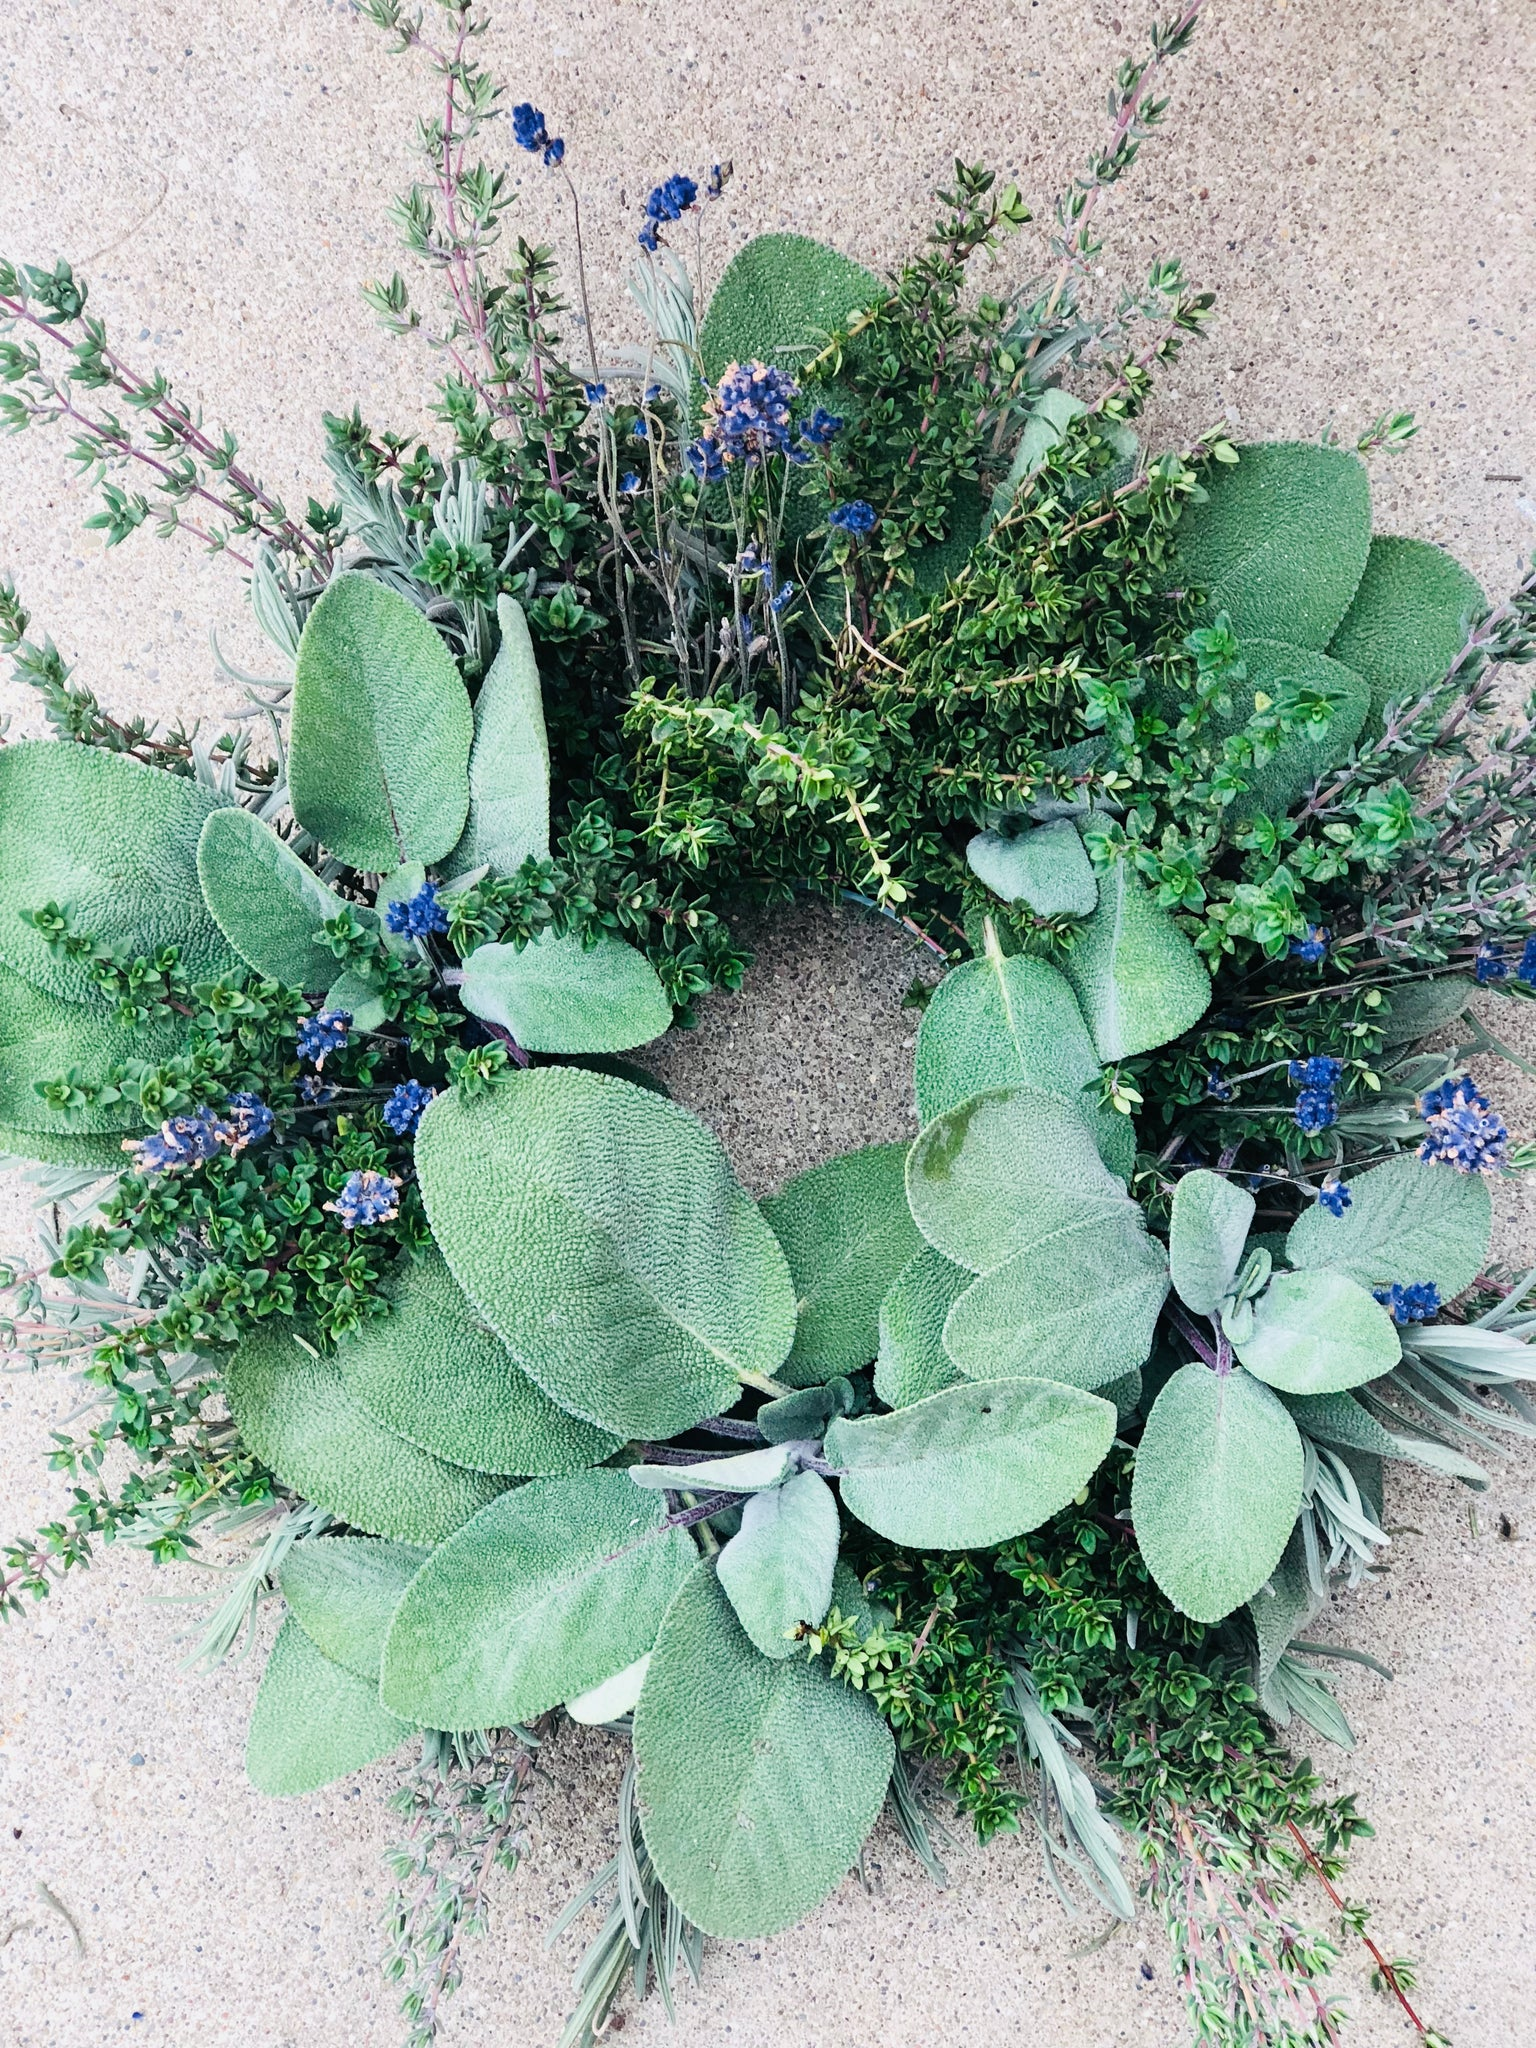 Fresh Herbal Culinary Wreath Workshop